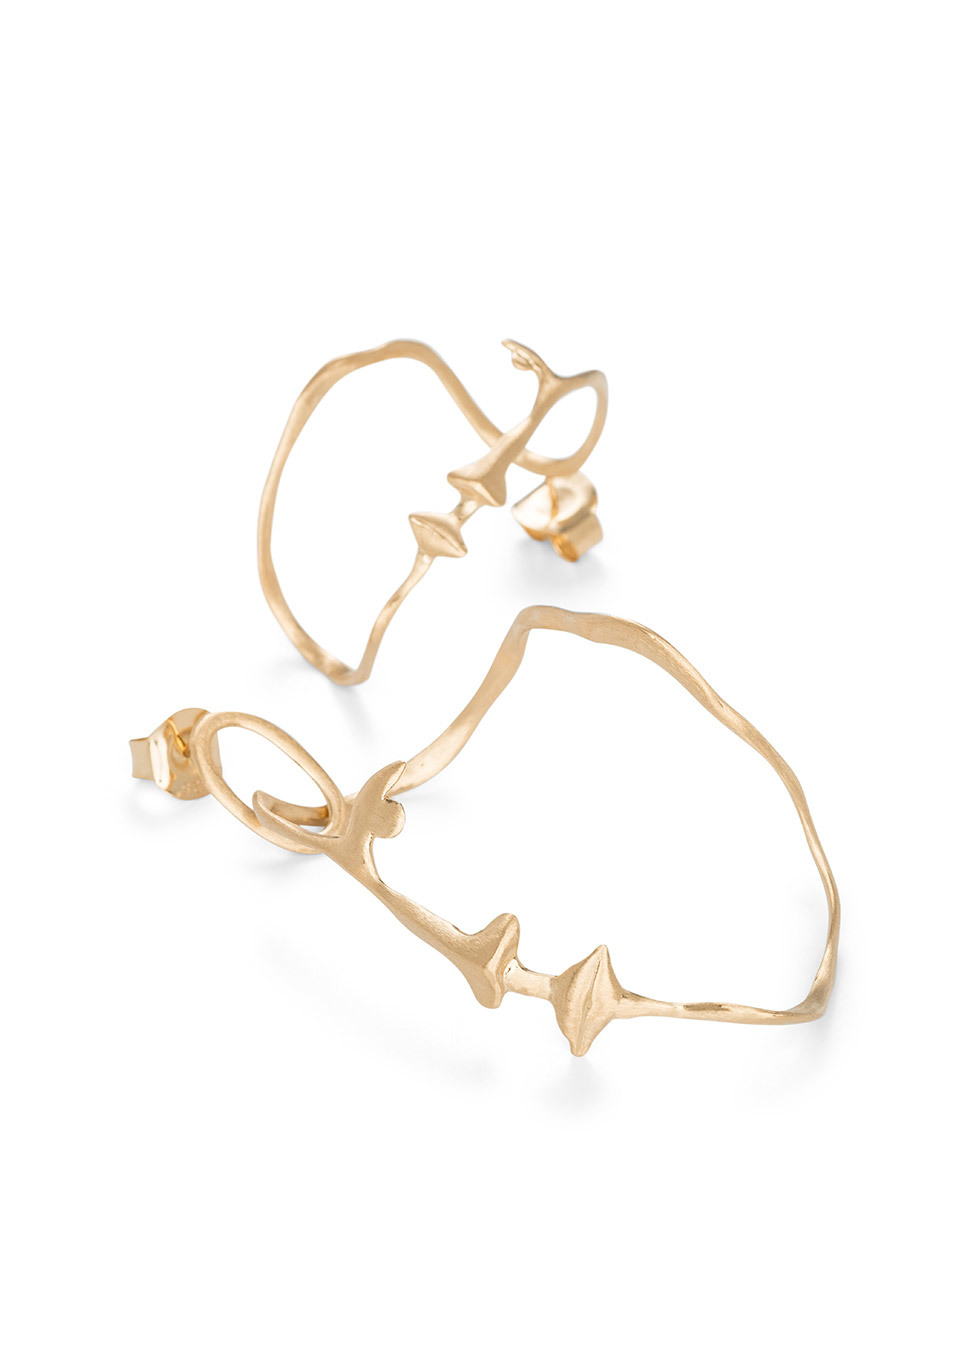 THE DANCER GOLD EARPIECES